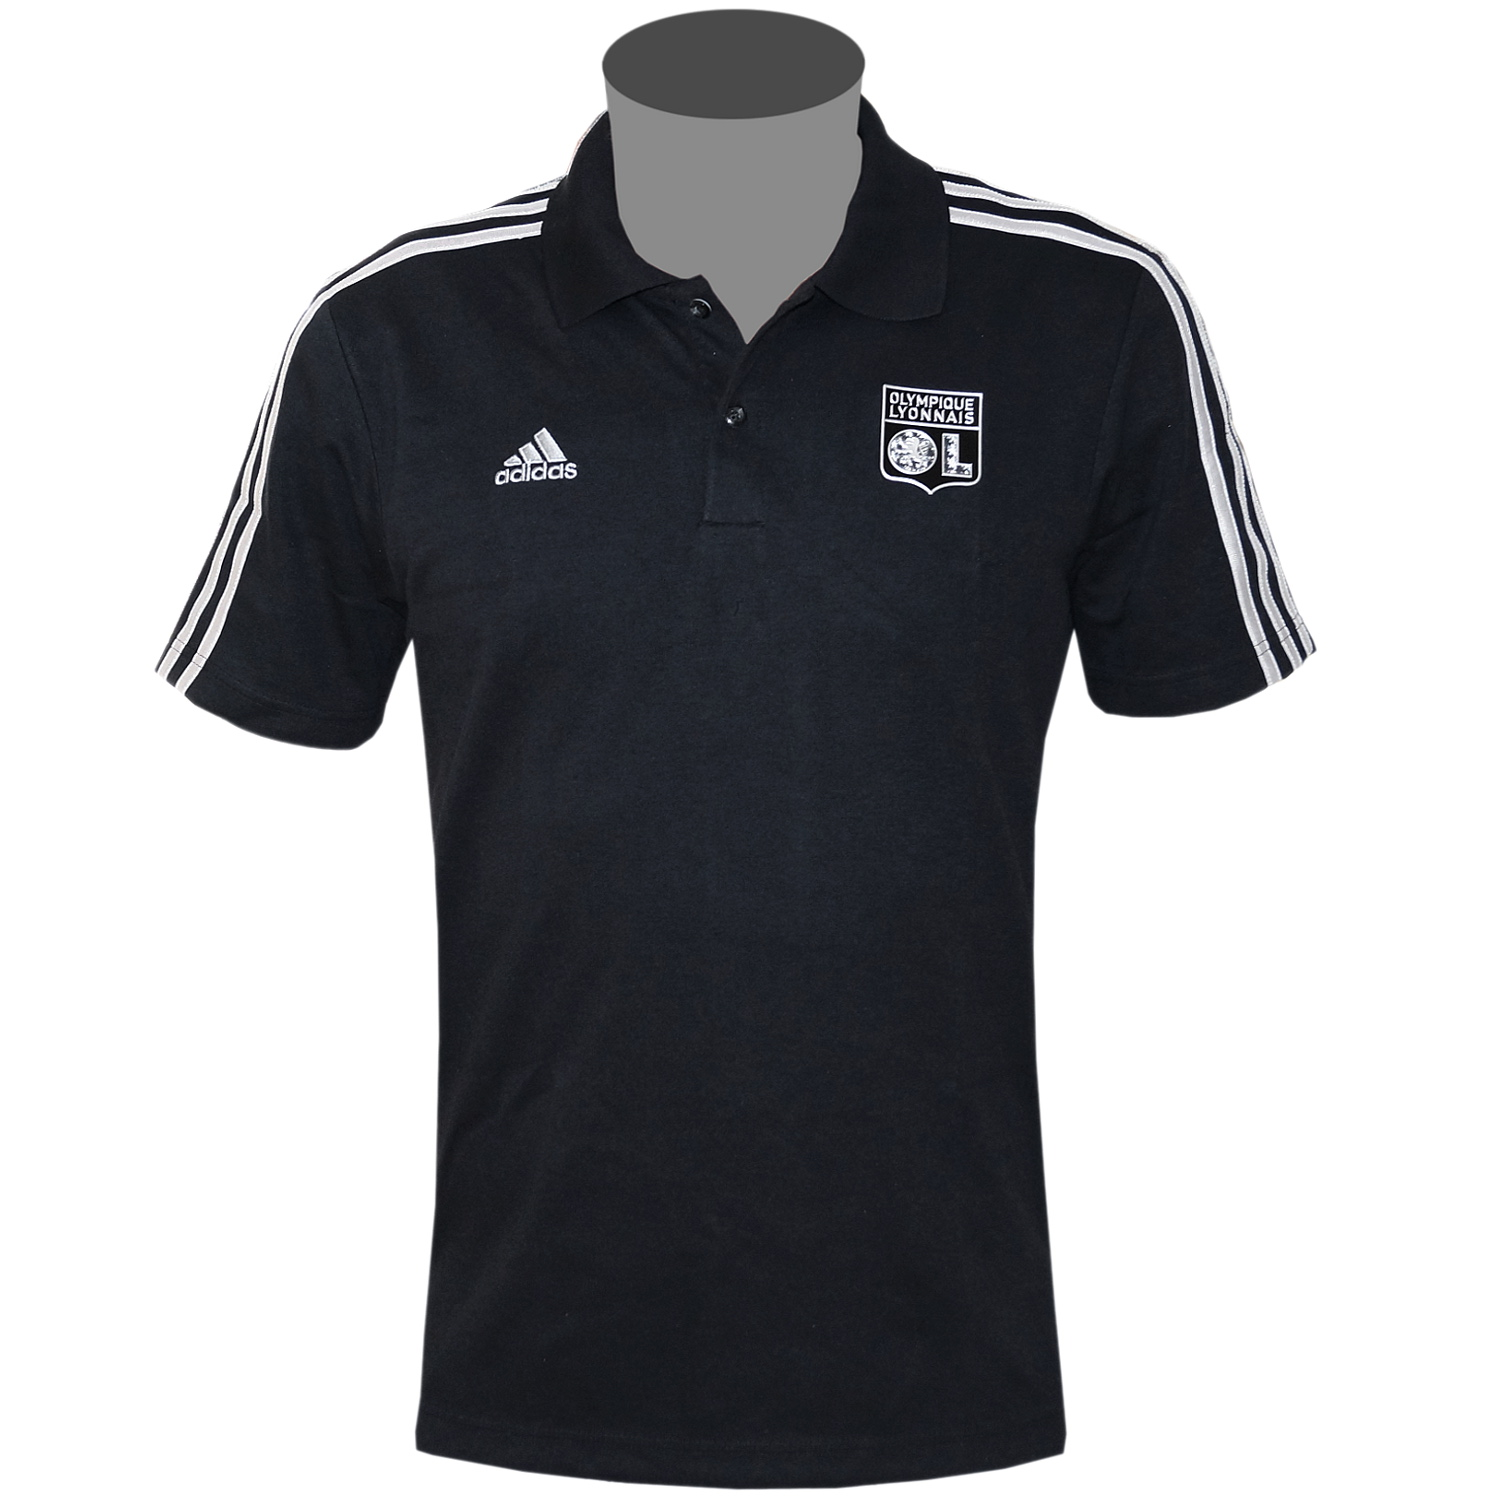 adidas olympique lyon herren poloshirt schwarz polo shirt. Black Bedroom Furniture Sets. Home Design Ideas